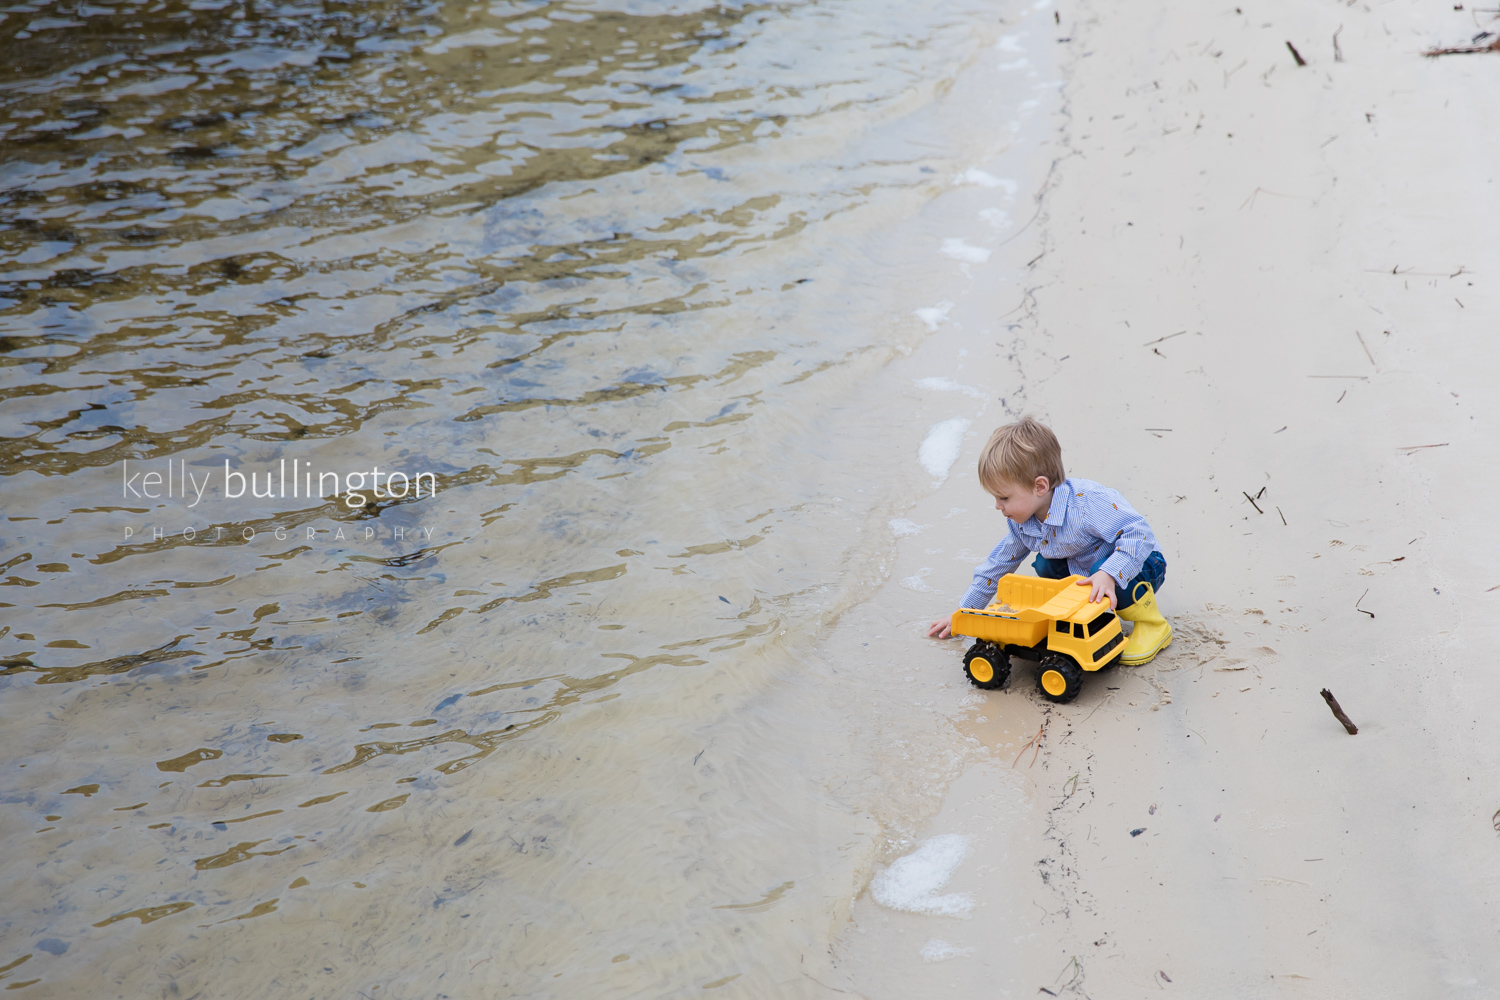 Fairhope_Family_Kelly_Bullington_Photography-8.jpg